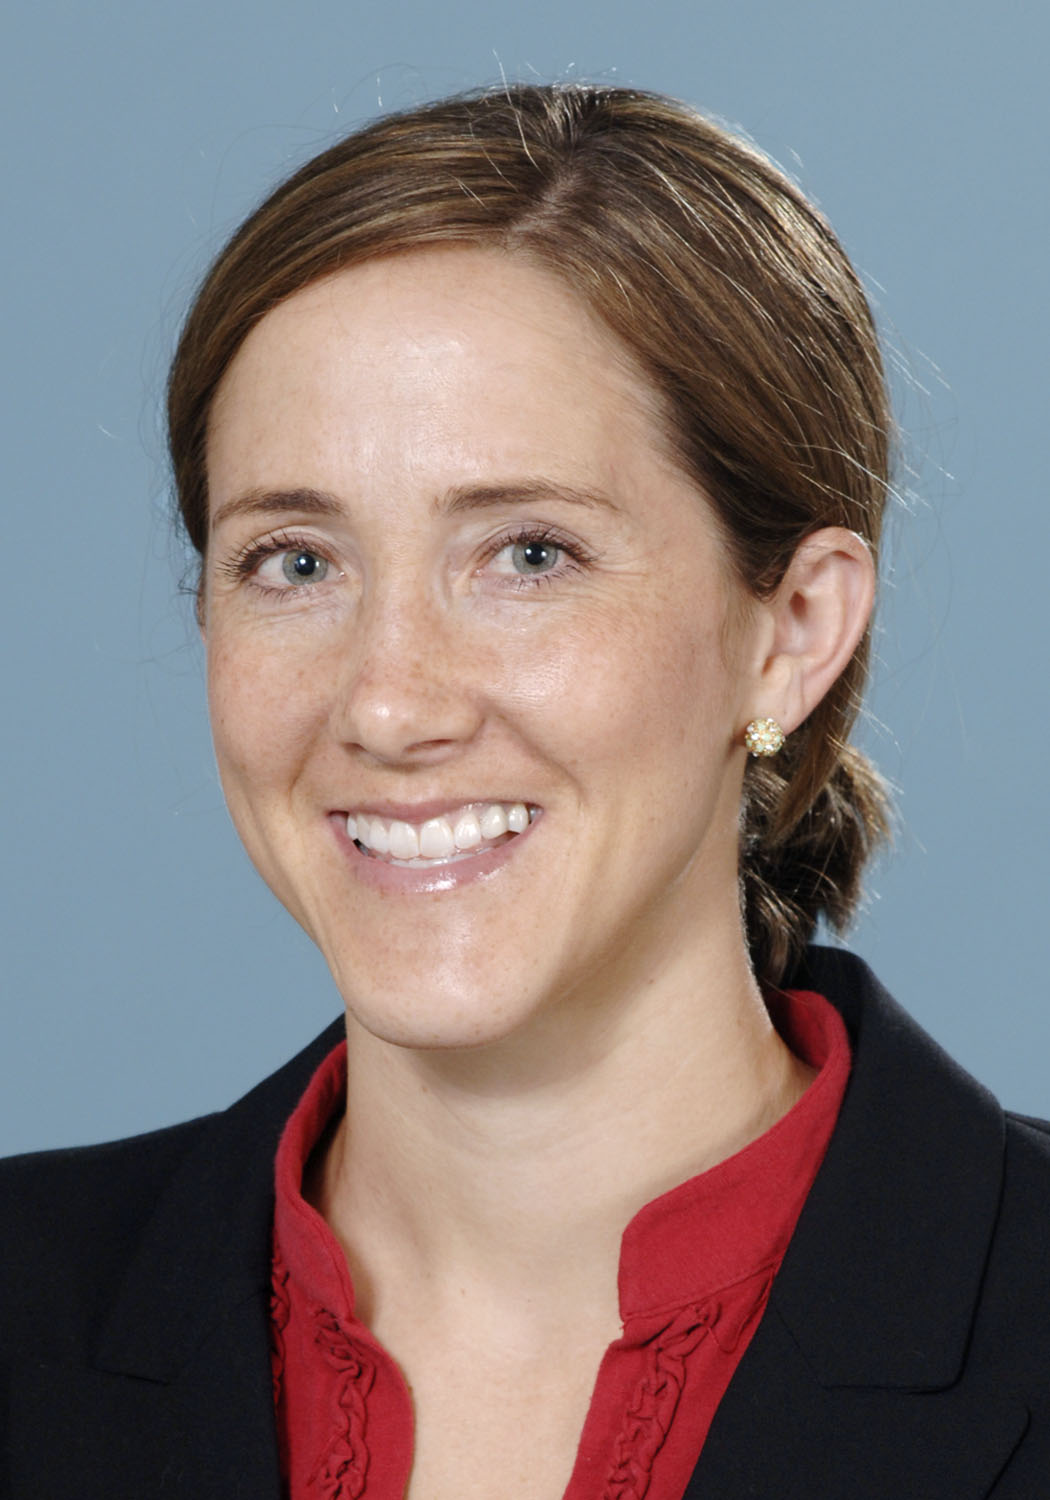 Dr. Megan Petersen